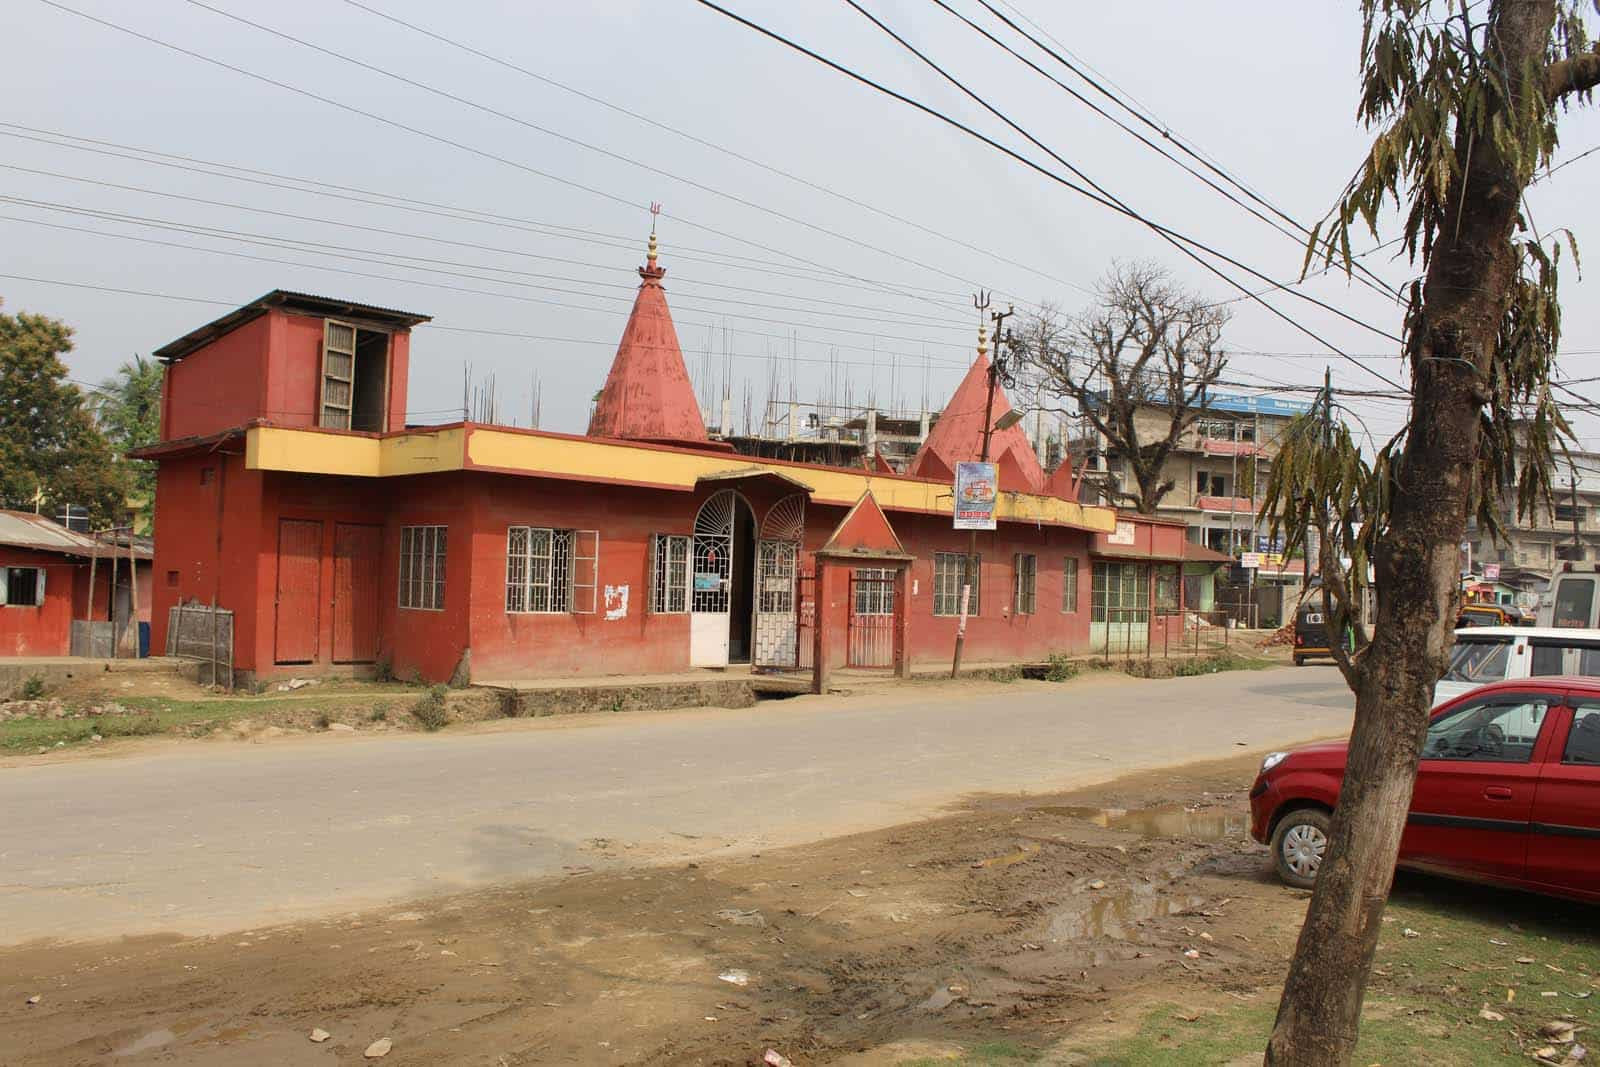 The first incident of beef being found was reported from this Kali temple in Rangpur, Silchar town back in 2013. The incident led to protests, arson and looting that police managed to contain eventually. HTPhoto/Appu Esthose Suresh